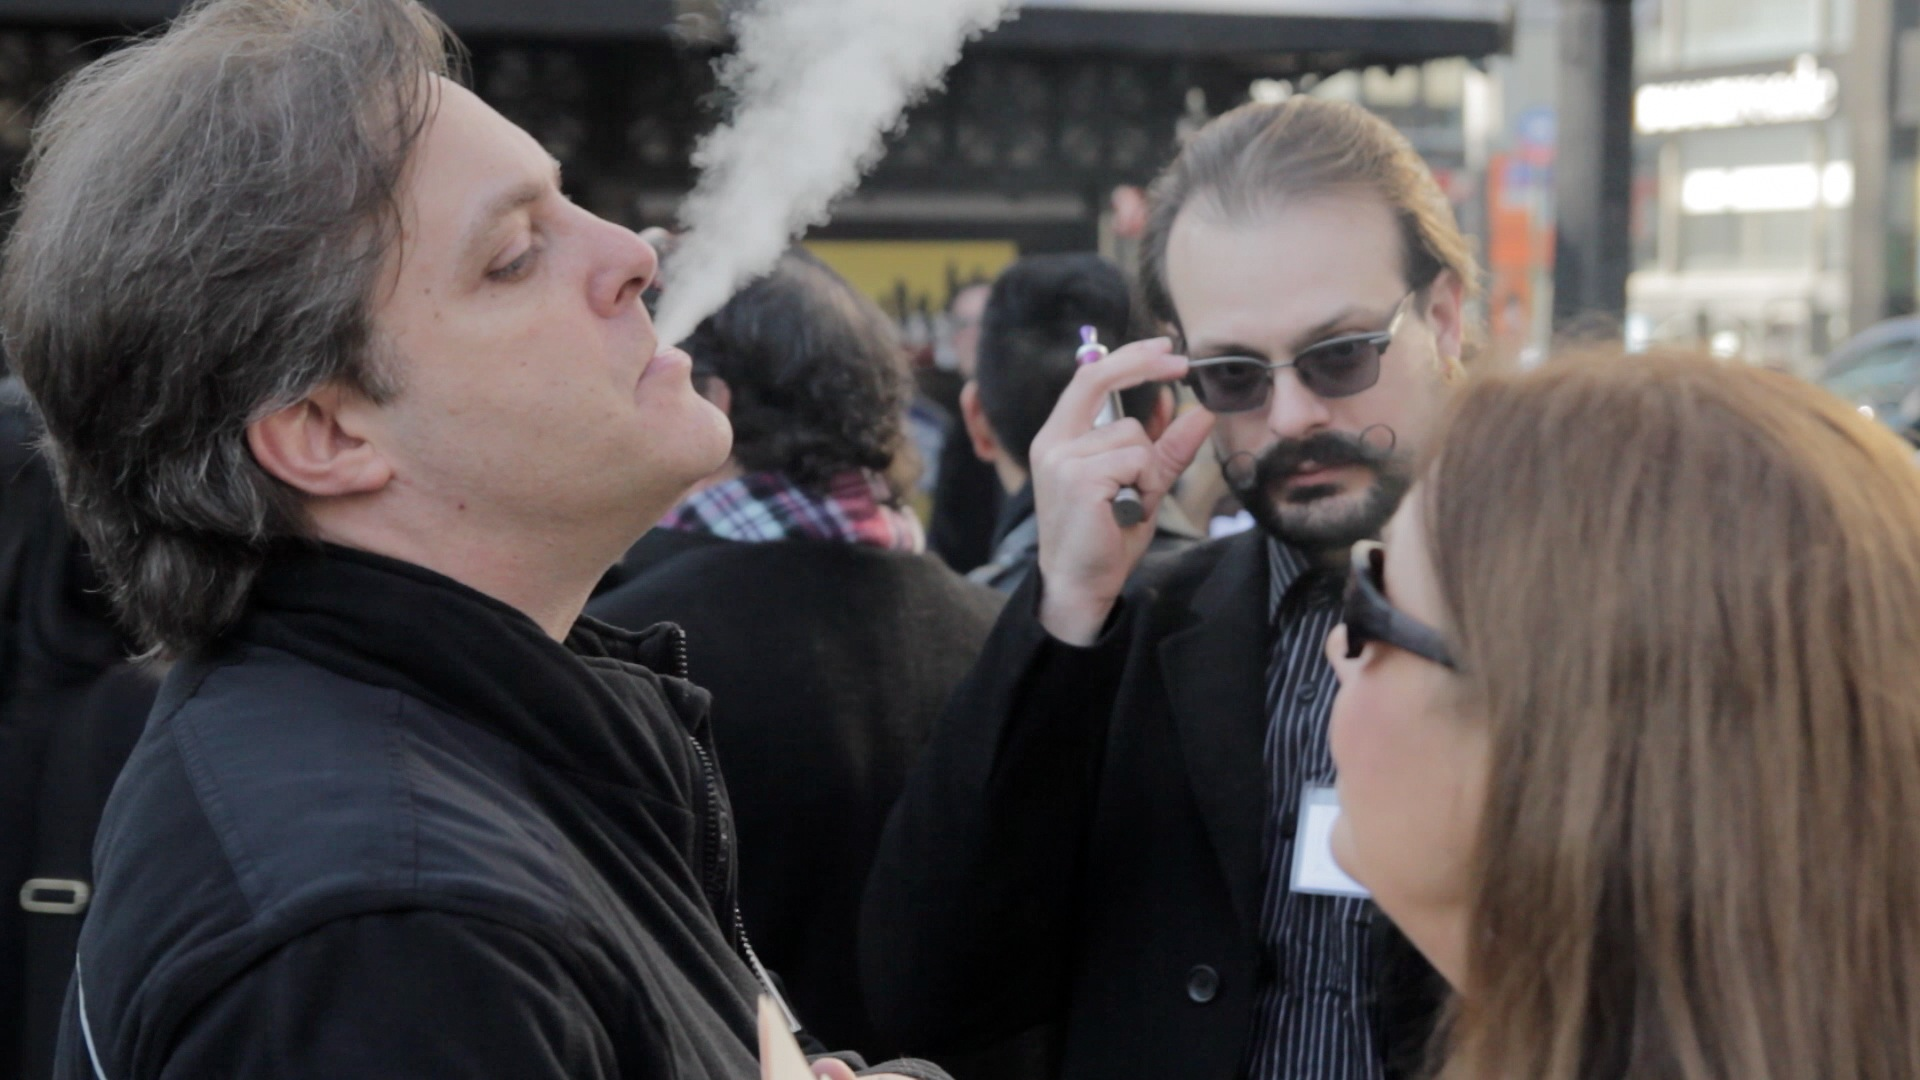 E-cig users fume at City Hall